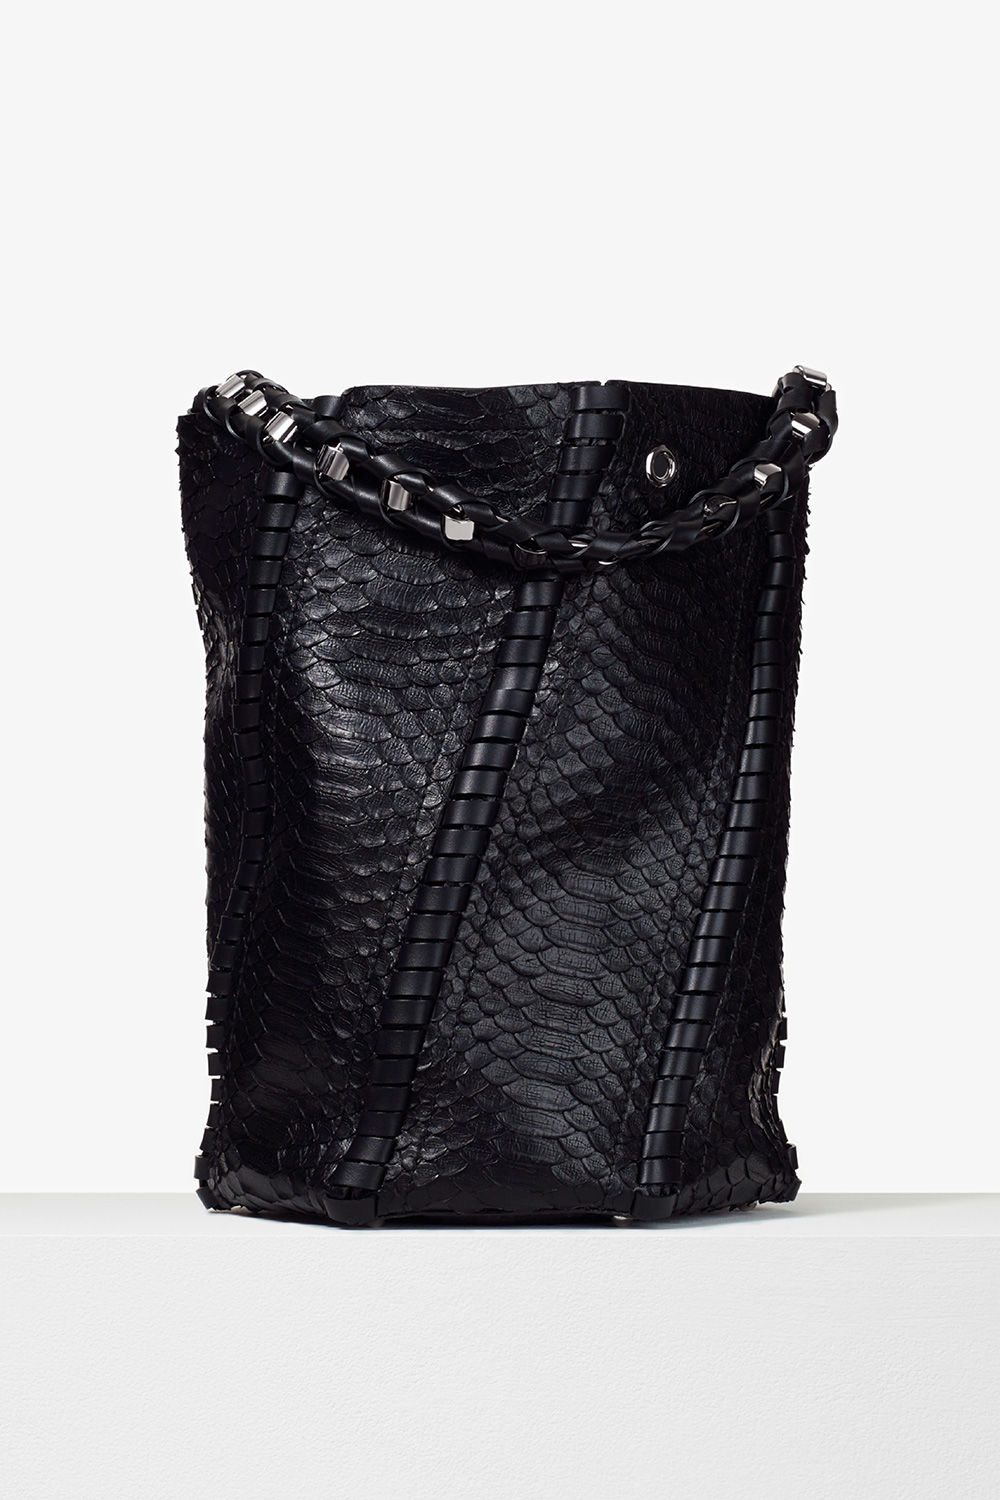 proenza schouler pre spring 2017 black soft matte python large hex whipstitch bucket bag